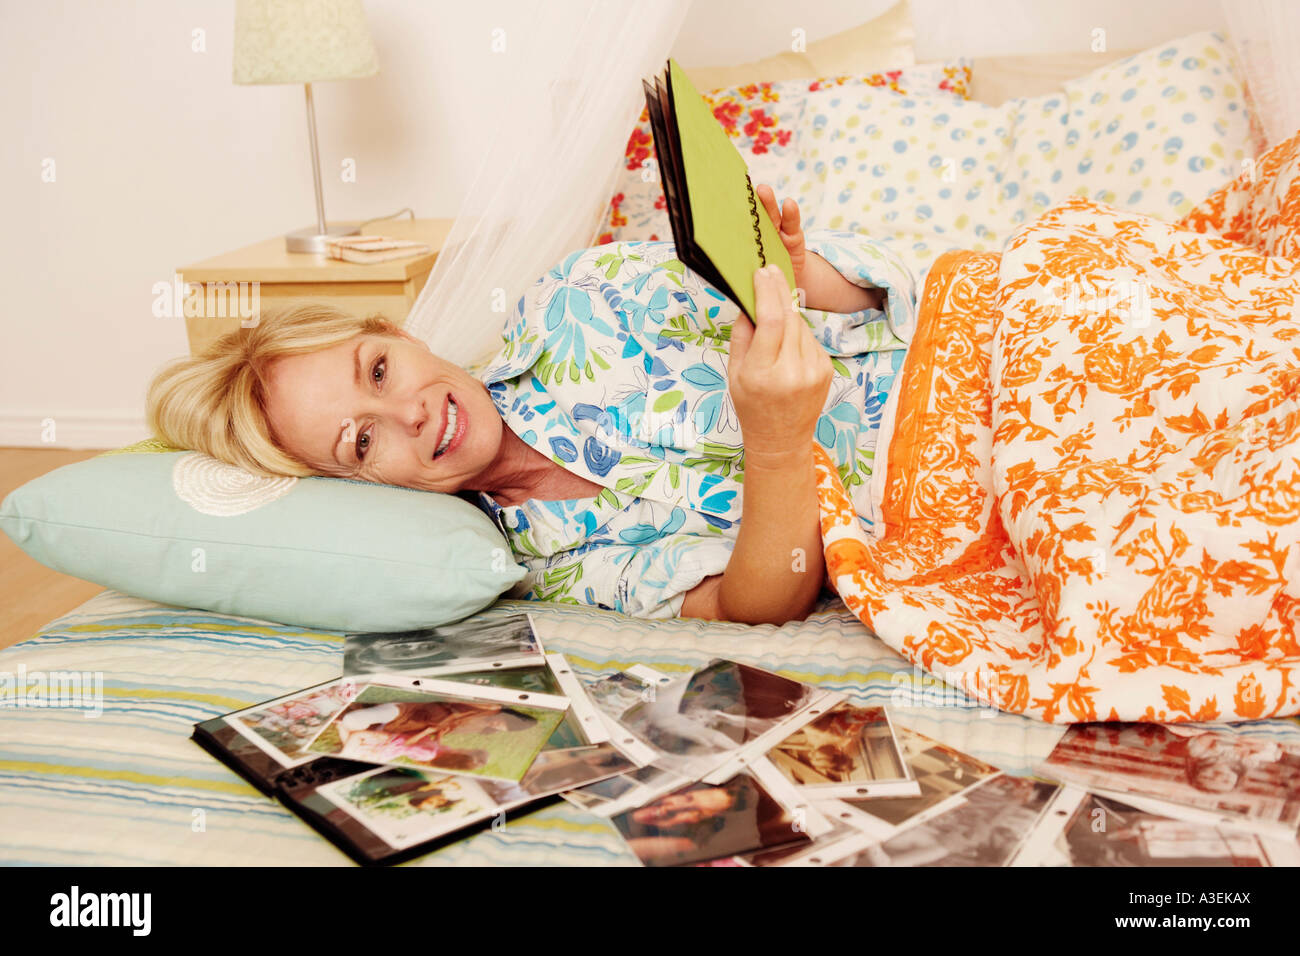 Mature woman lying on the bed and looking a photo album - Stock Image